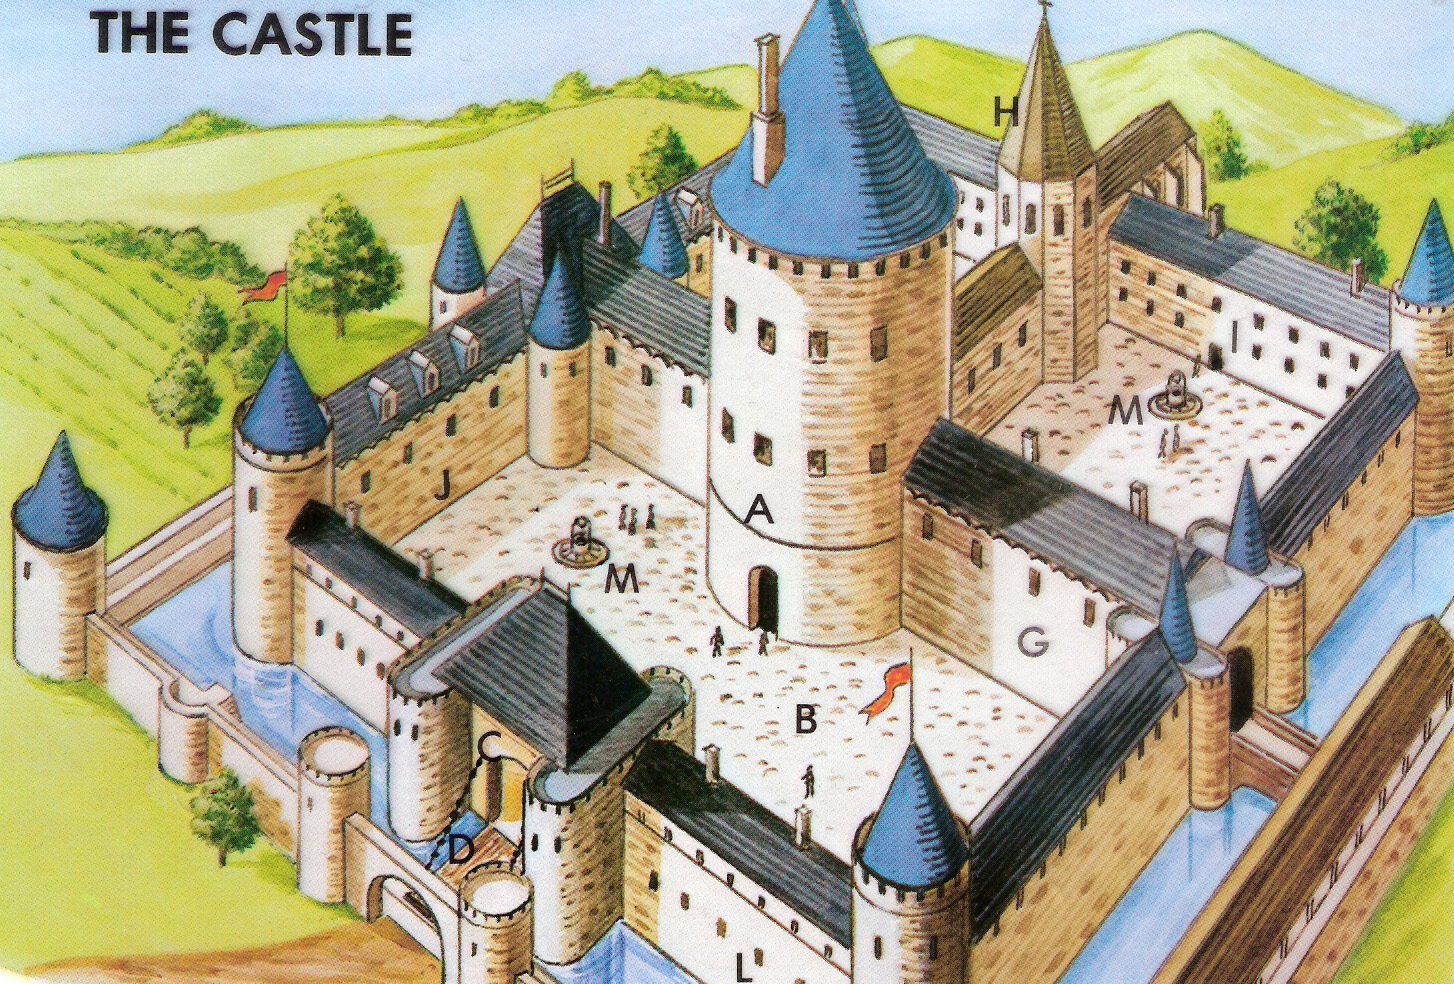 castle ss6shms [licensed for non commercial use only] middle ages